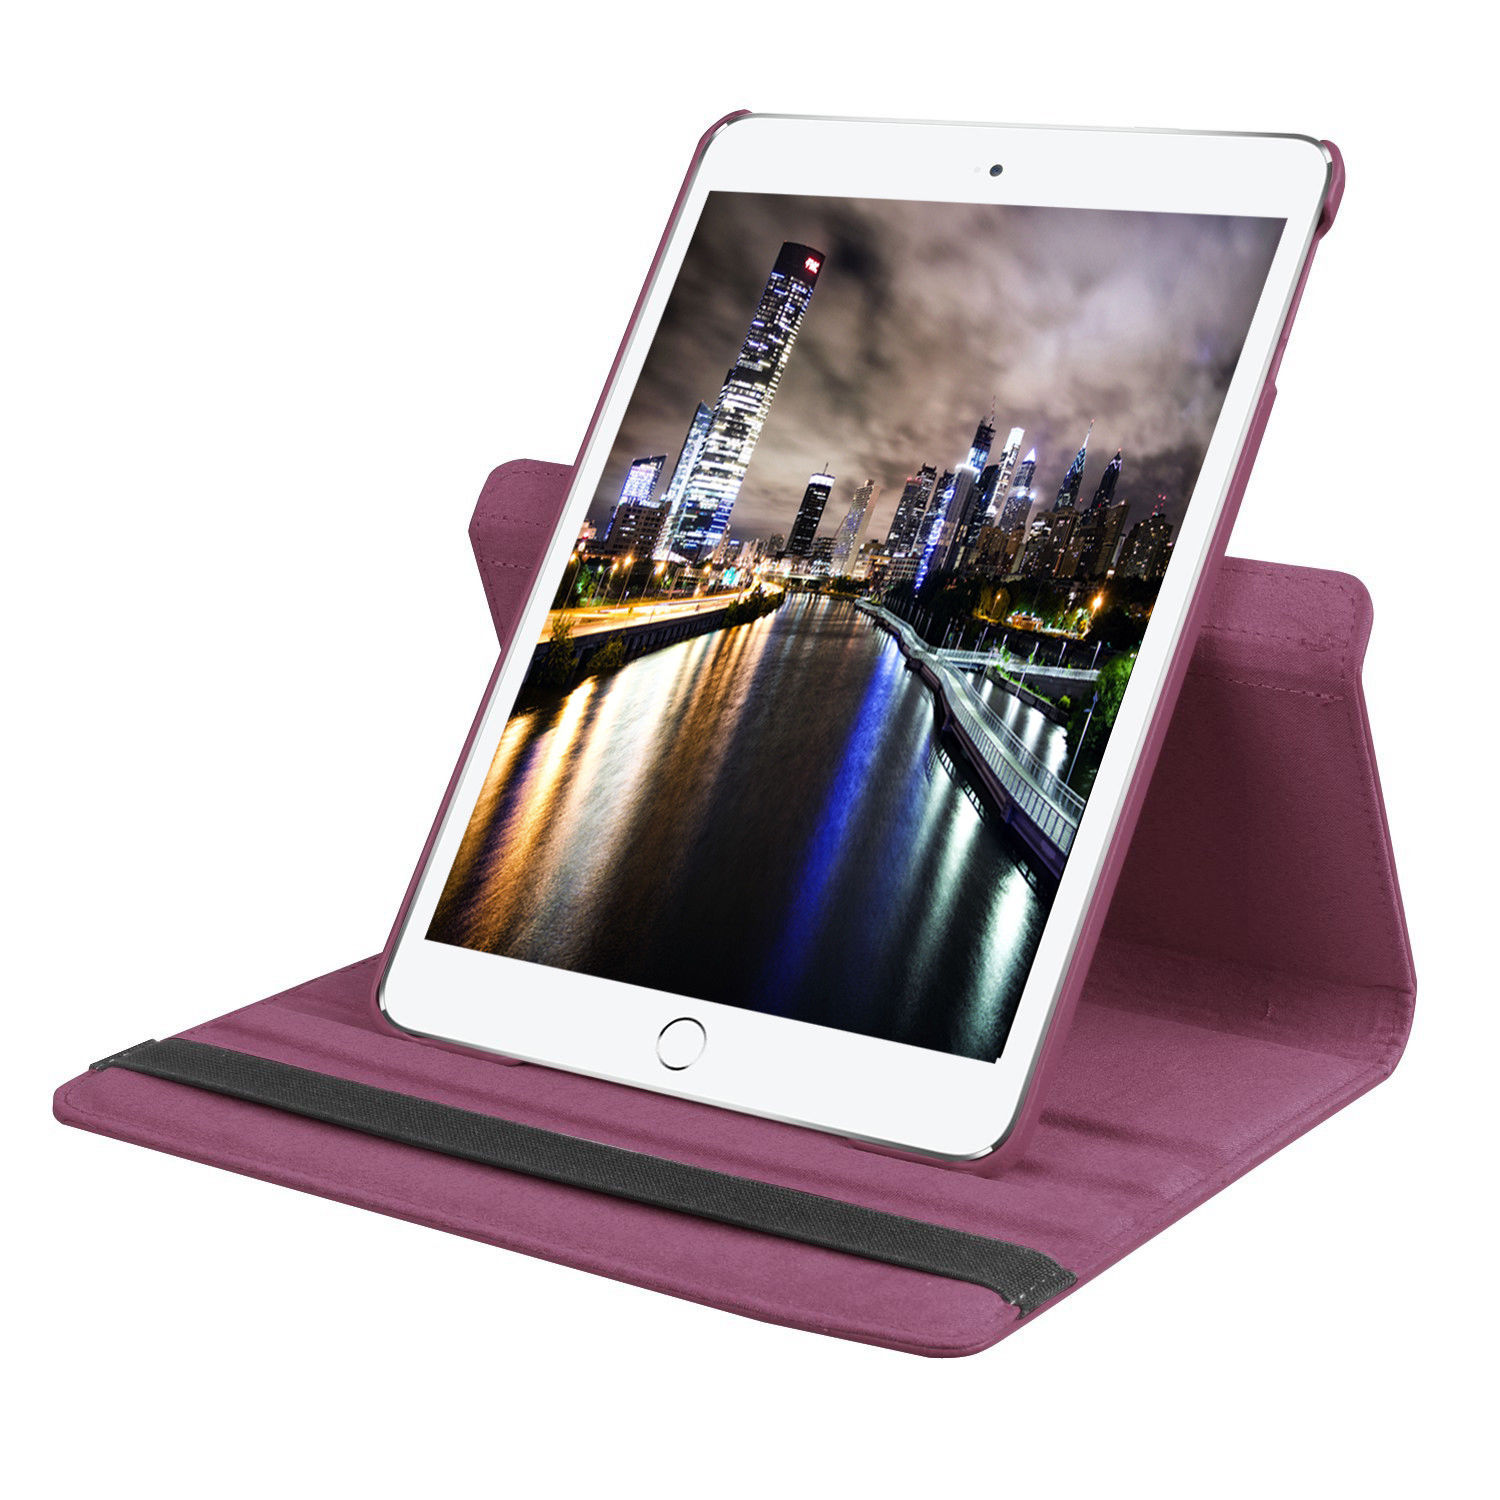 Custodia-per-Apple-iPad-Pro-2017-iPad-Air-3-10-5-Smart-Cover-Case-Custodia-Protettiva miniatura 78